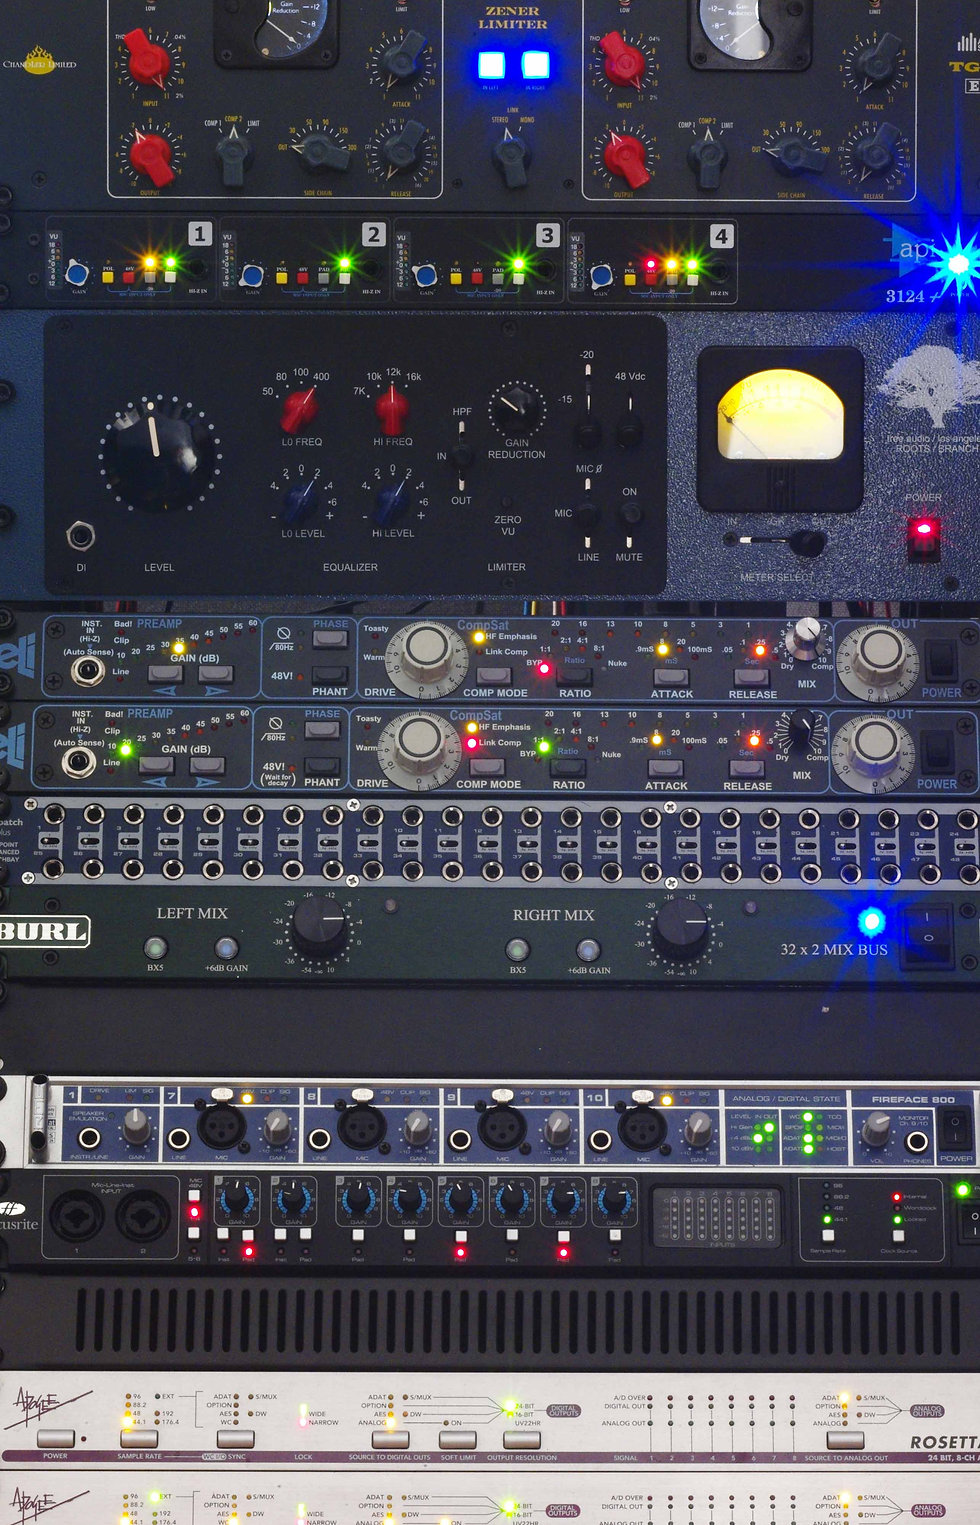 outboard Frigo Studio, chandler zener, mike-e, the branch, burl b32, rosetta, api 3124+